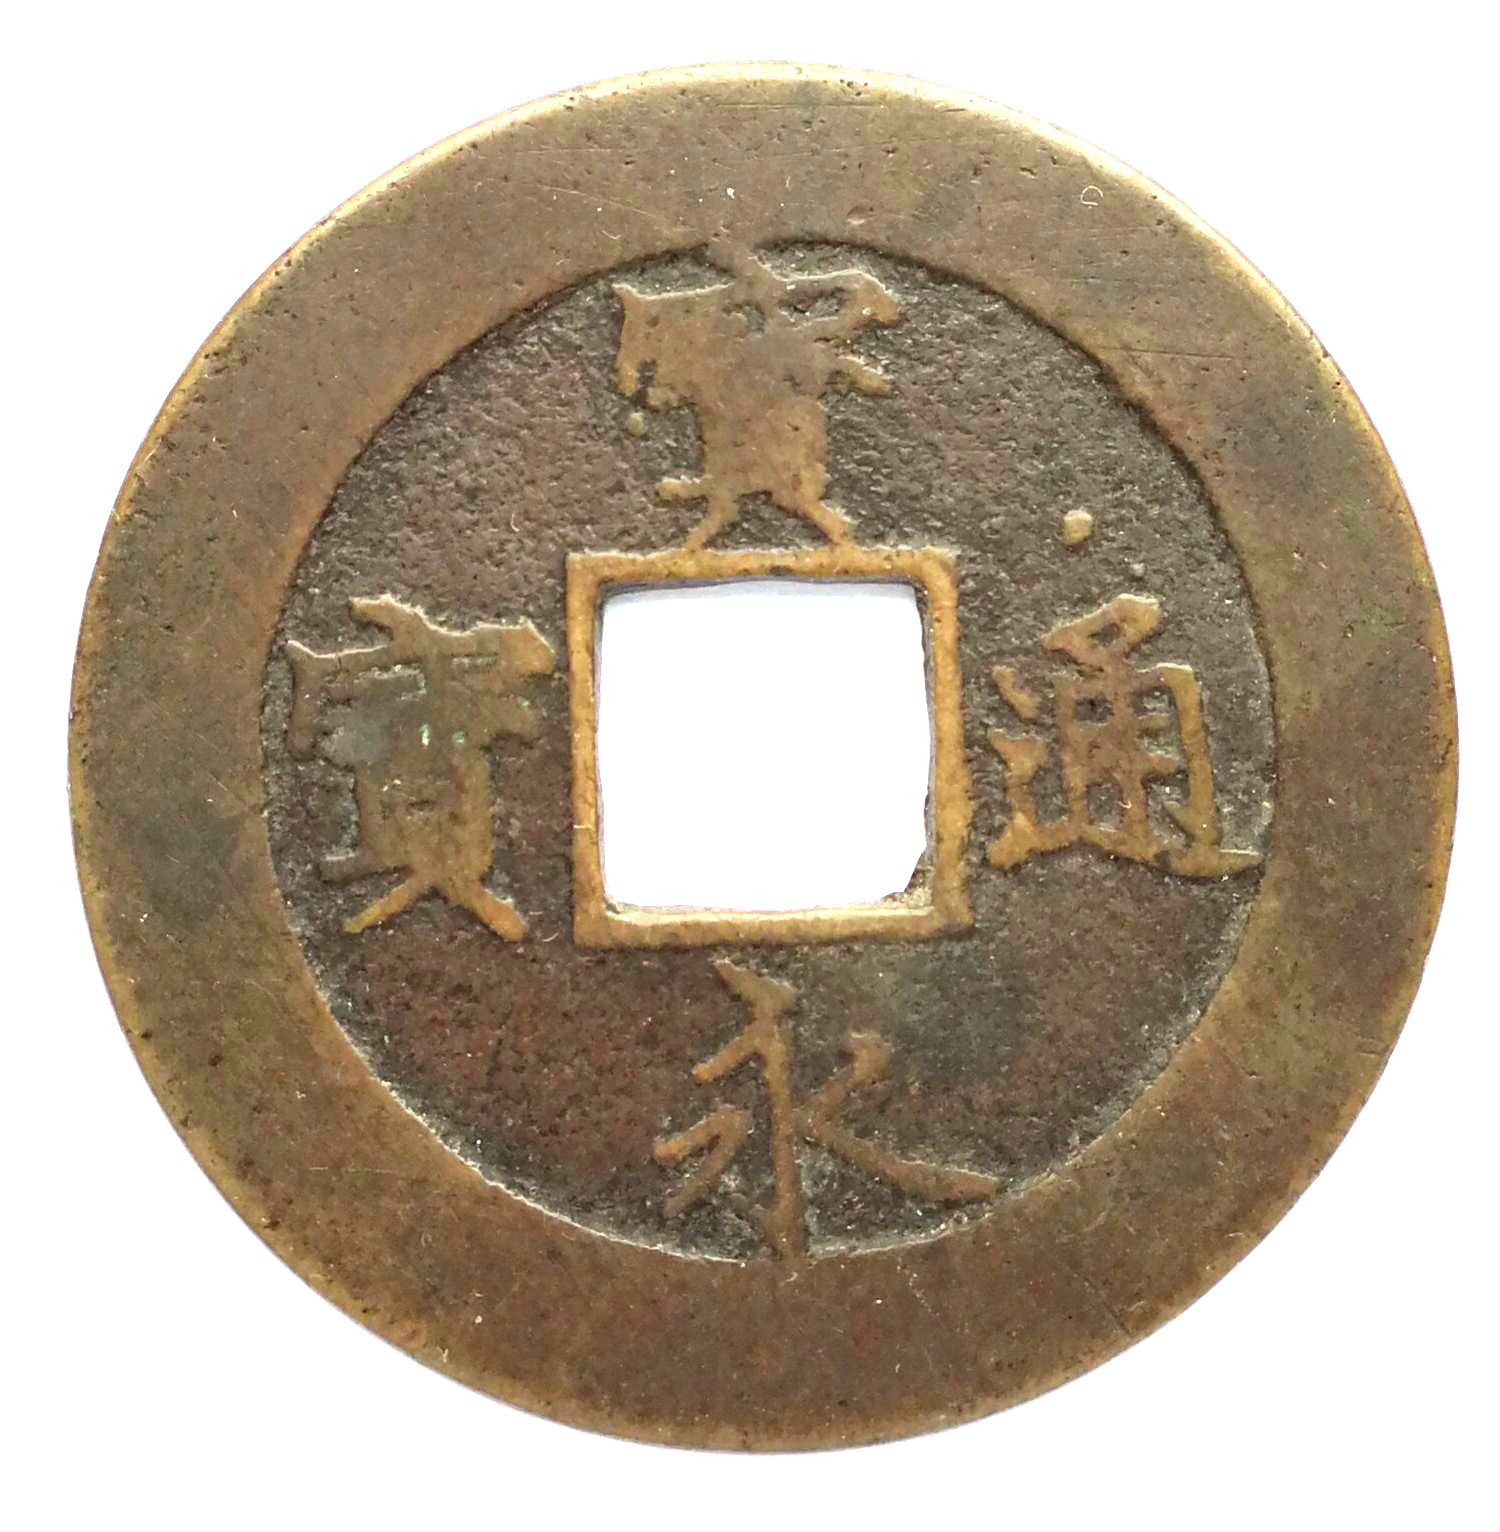 L7060, Japan Hoei Tsu-ho Coin (宝永通宝), 10 Mon, 1708 KM#57